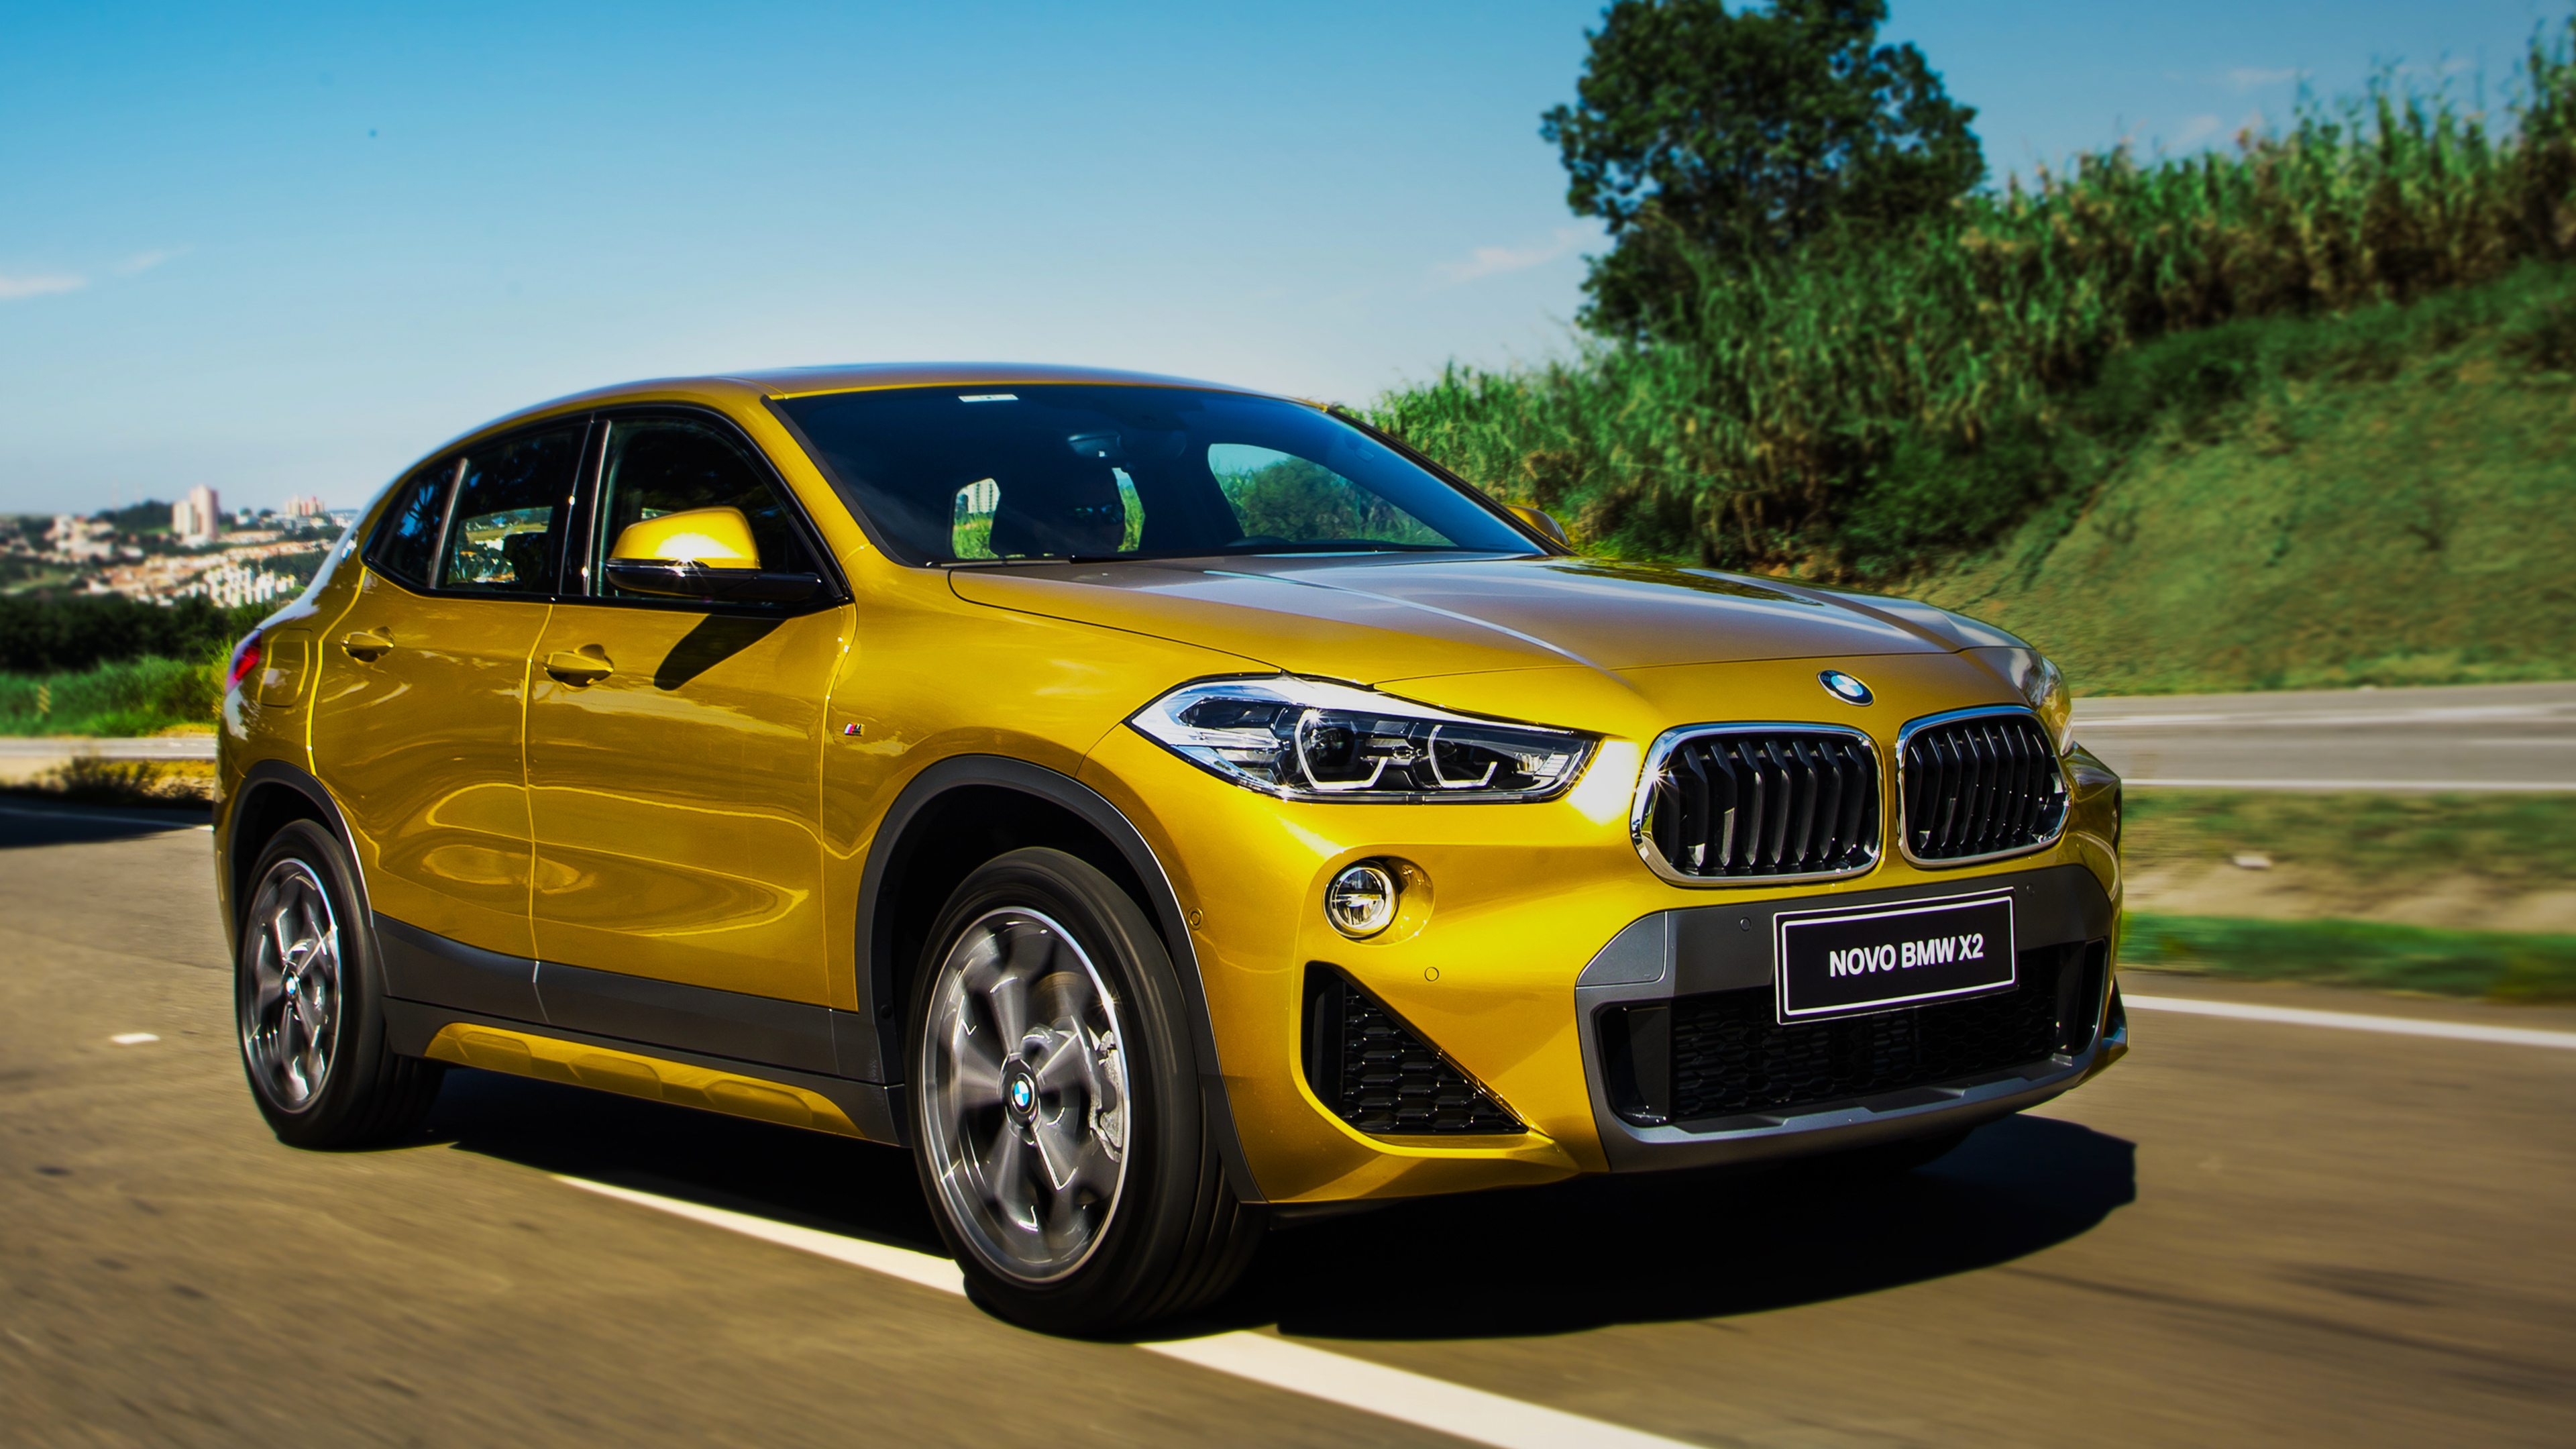 2018 bmw x2 sdrive20i m sport x 4k wallpaper hd car wallpapers id 10371. Black Bedroom Furniture Sets. Home Design Ideas